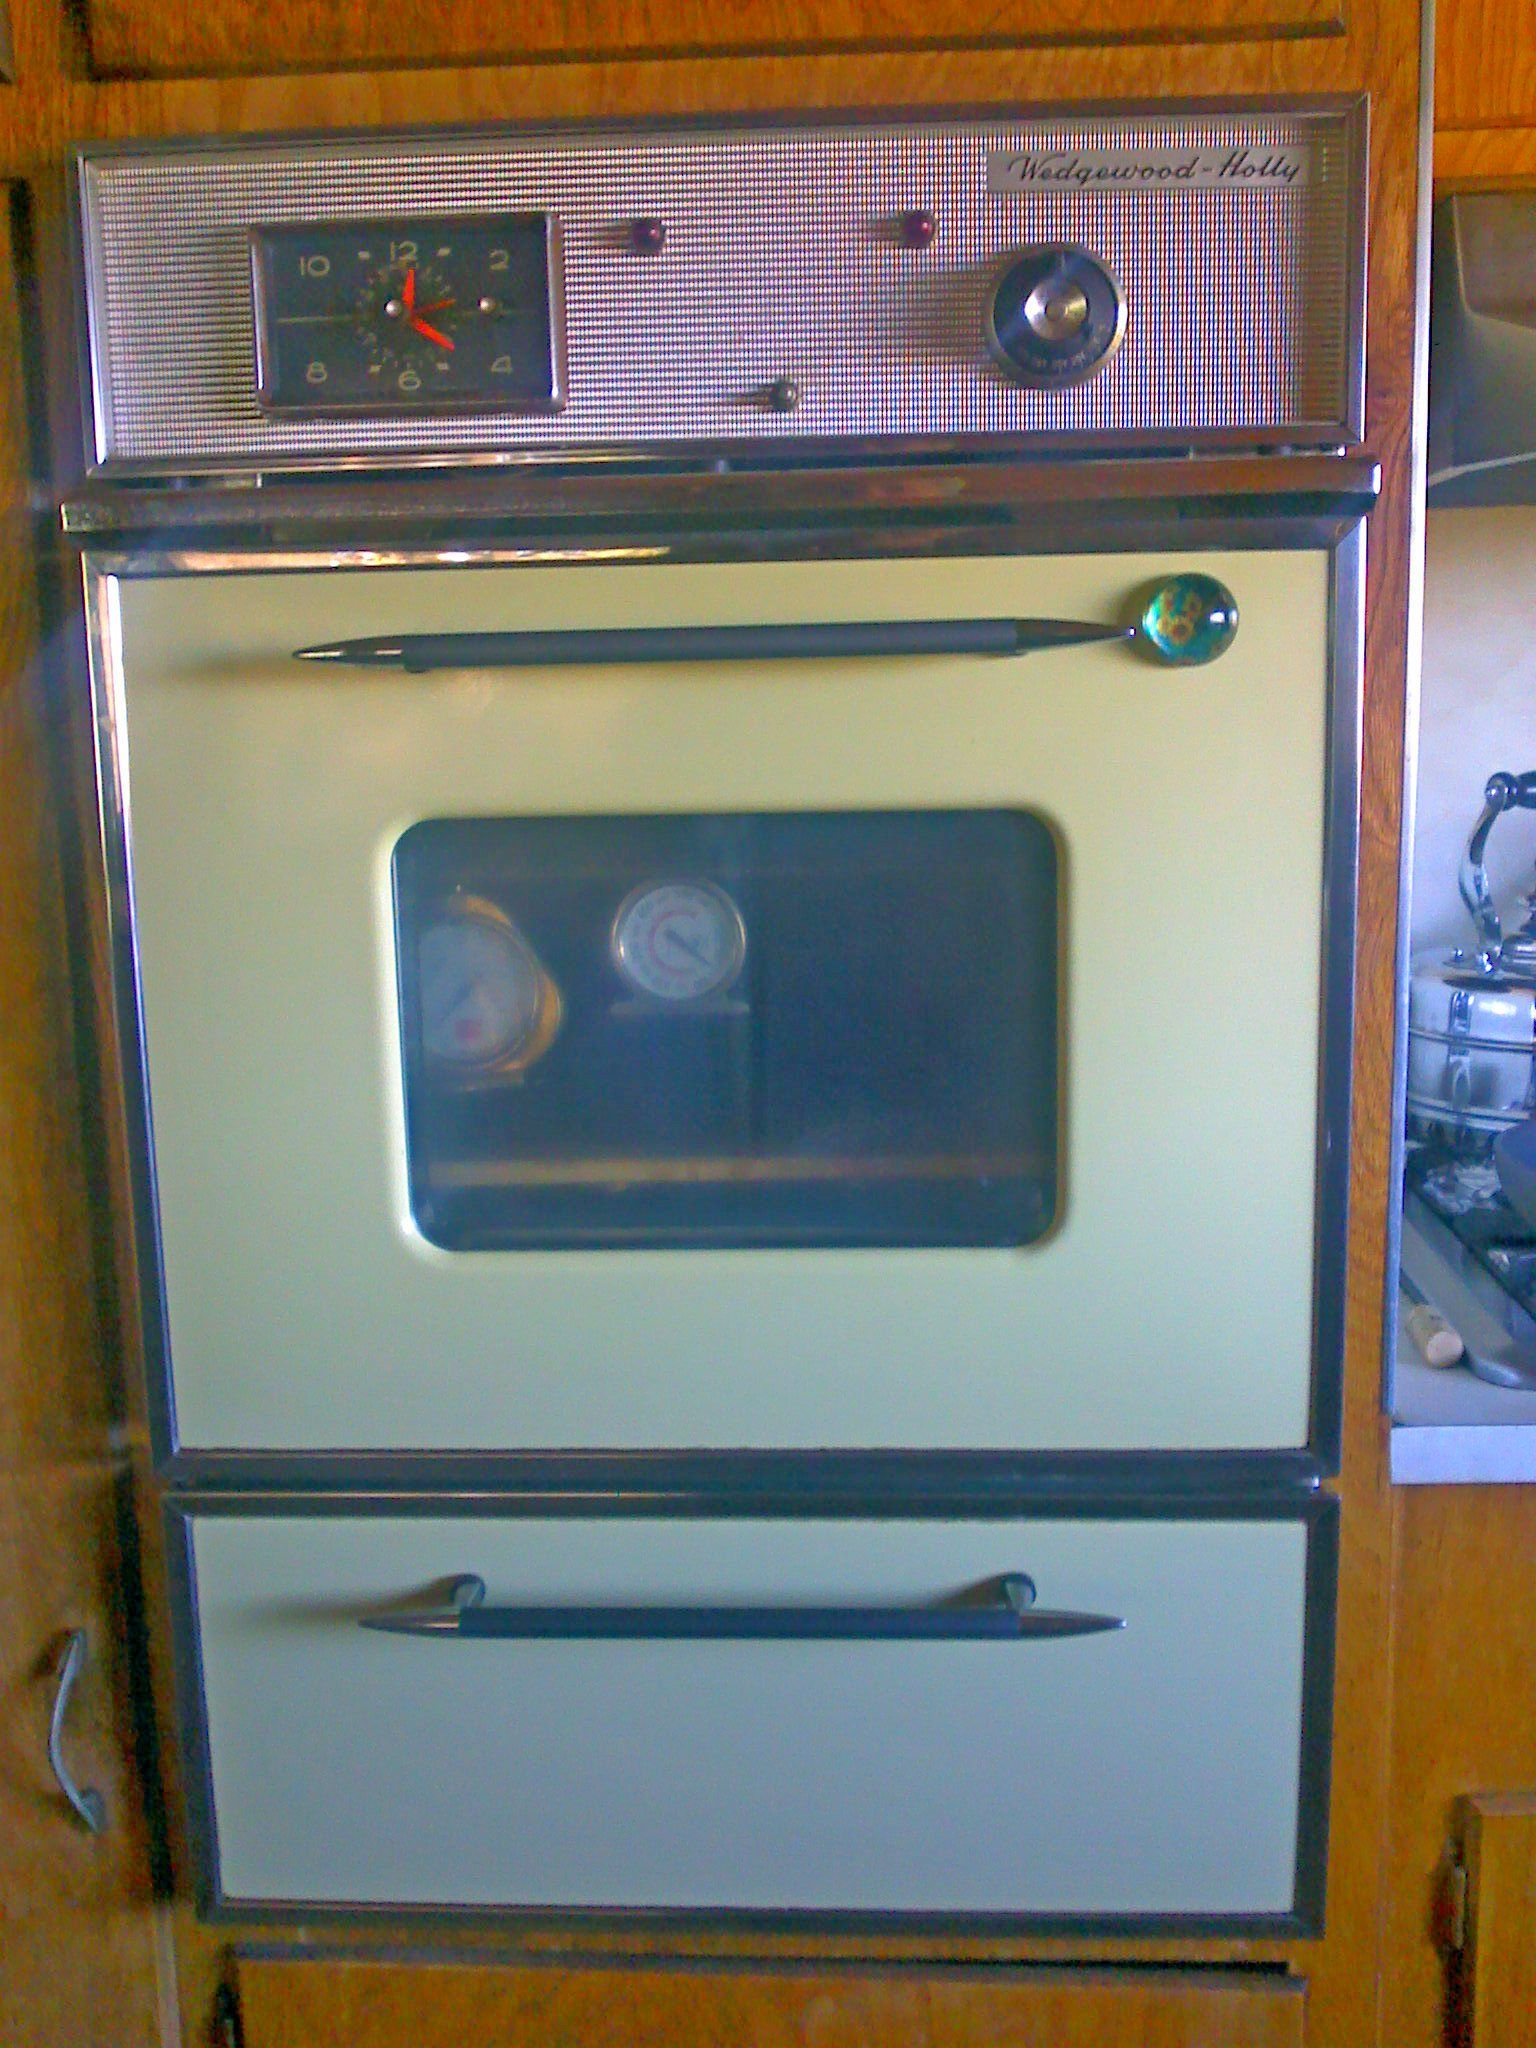 Vintage Wedgewood-Holly oven in 1962 Roadliner. Works perfectly ...